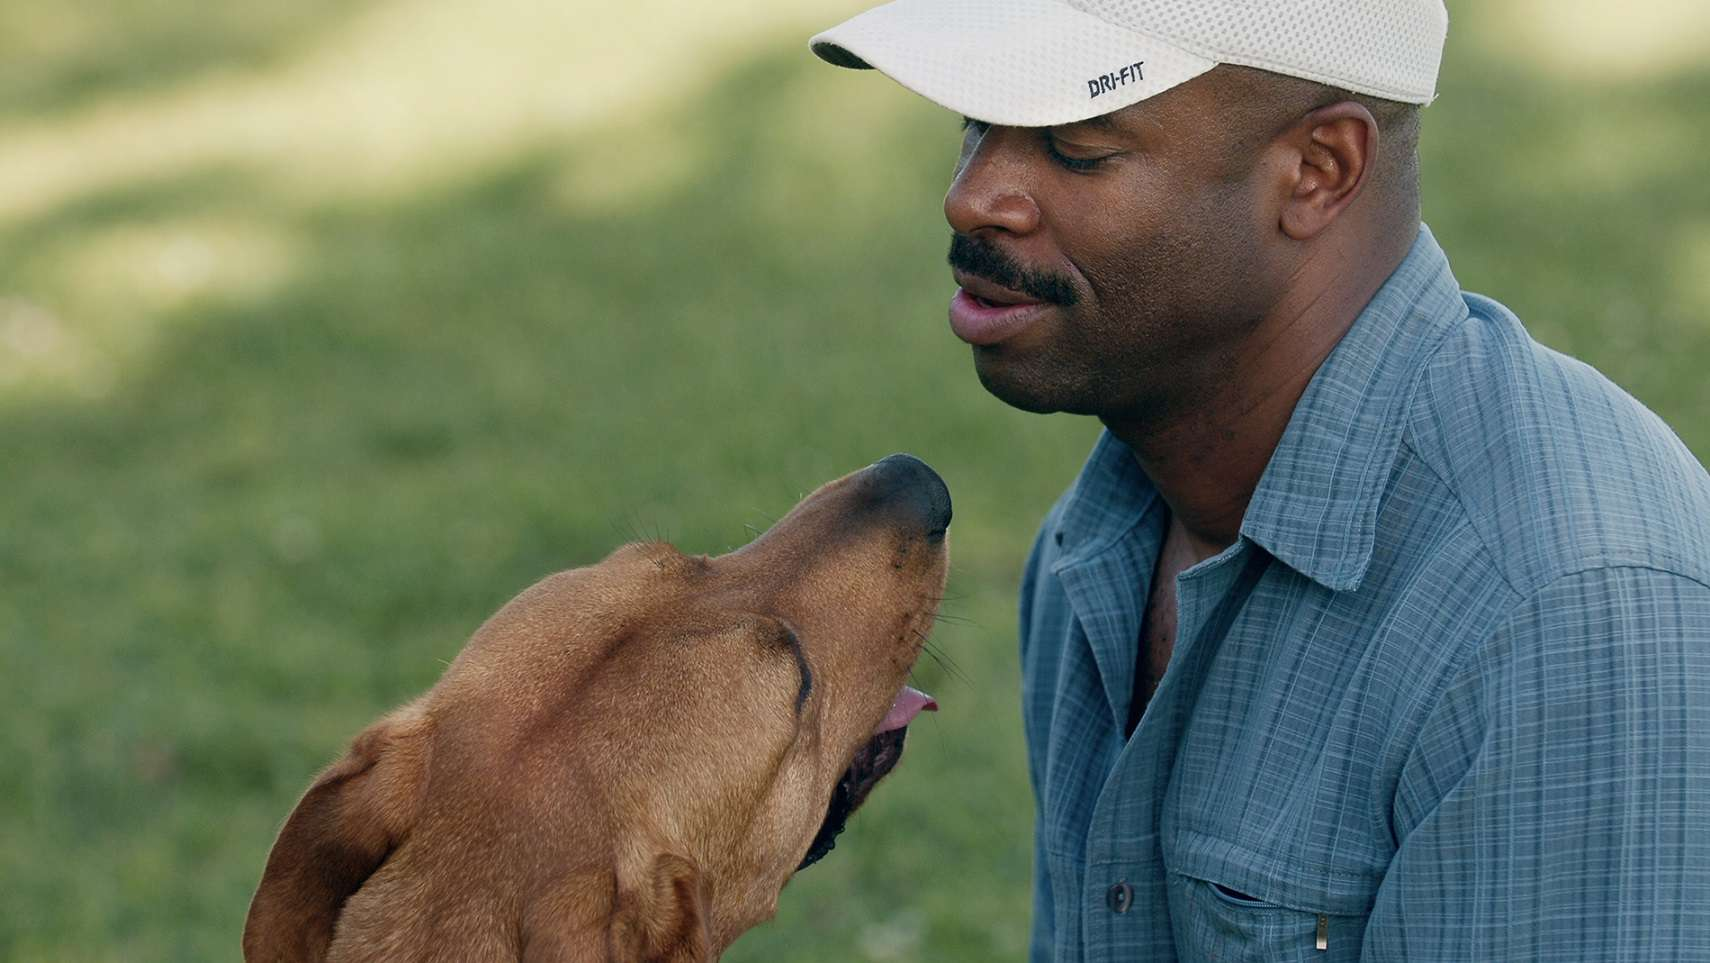 Leland Melvin with one of his dogs